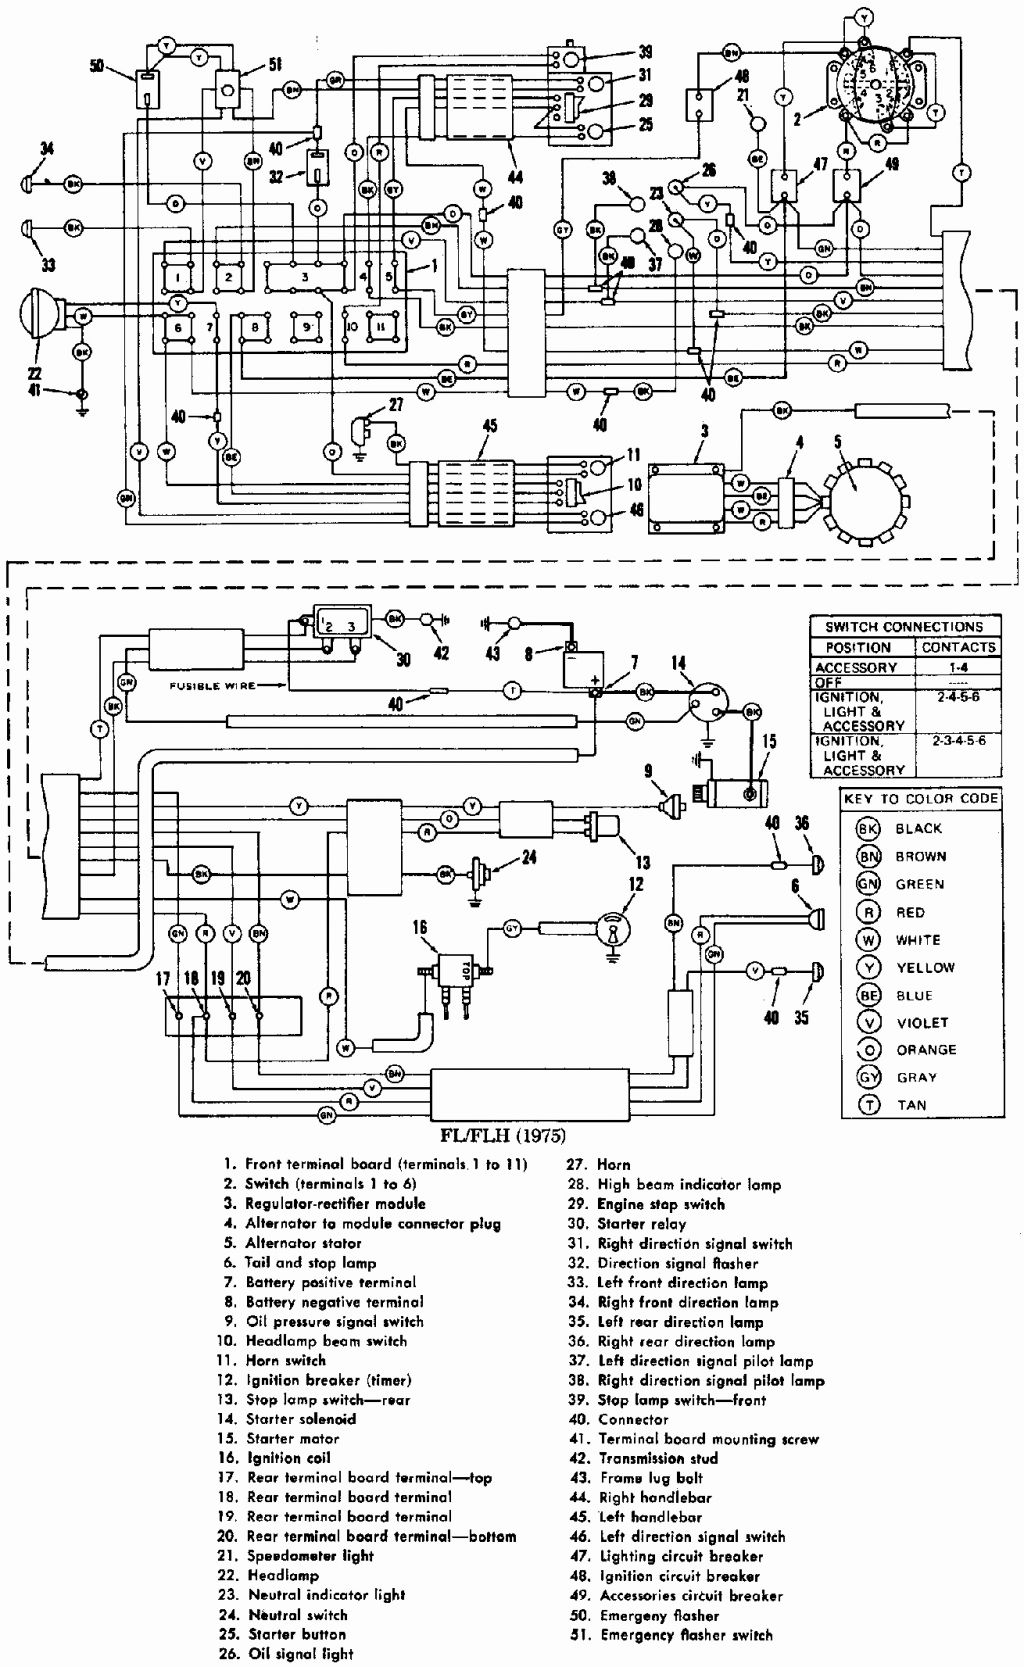 Flh Dash Wiring Diagram | Wiring Diagram Harley Flh Wire Harness on